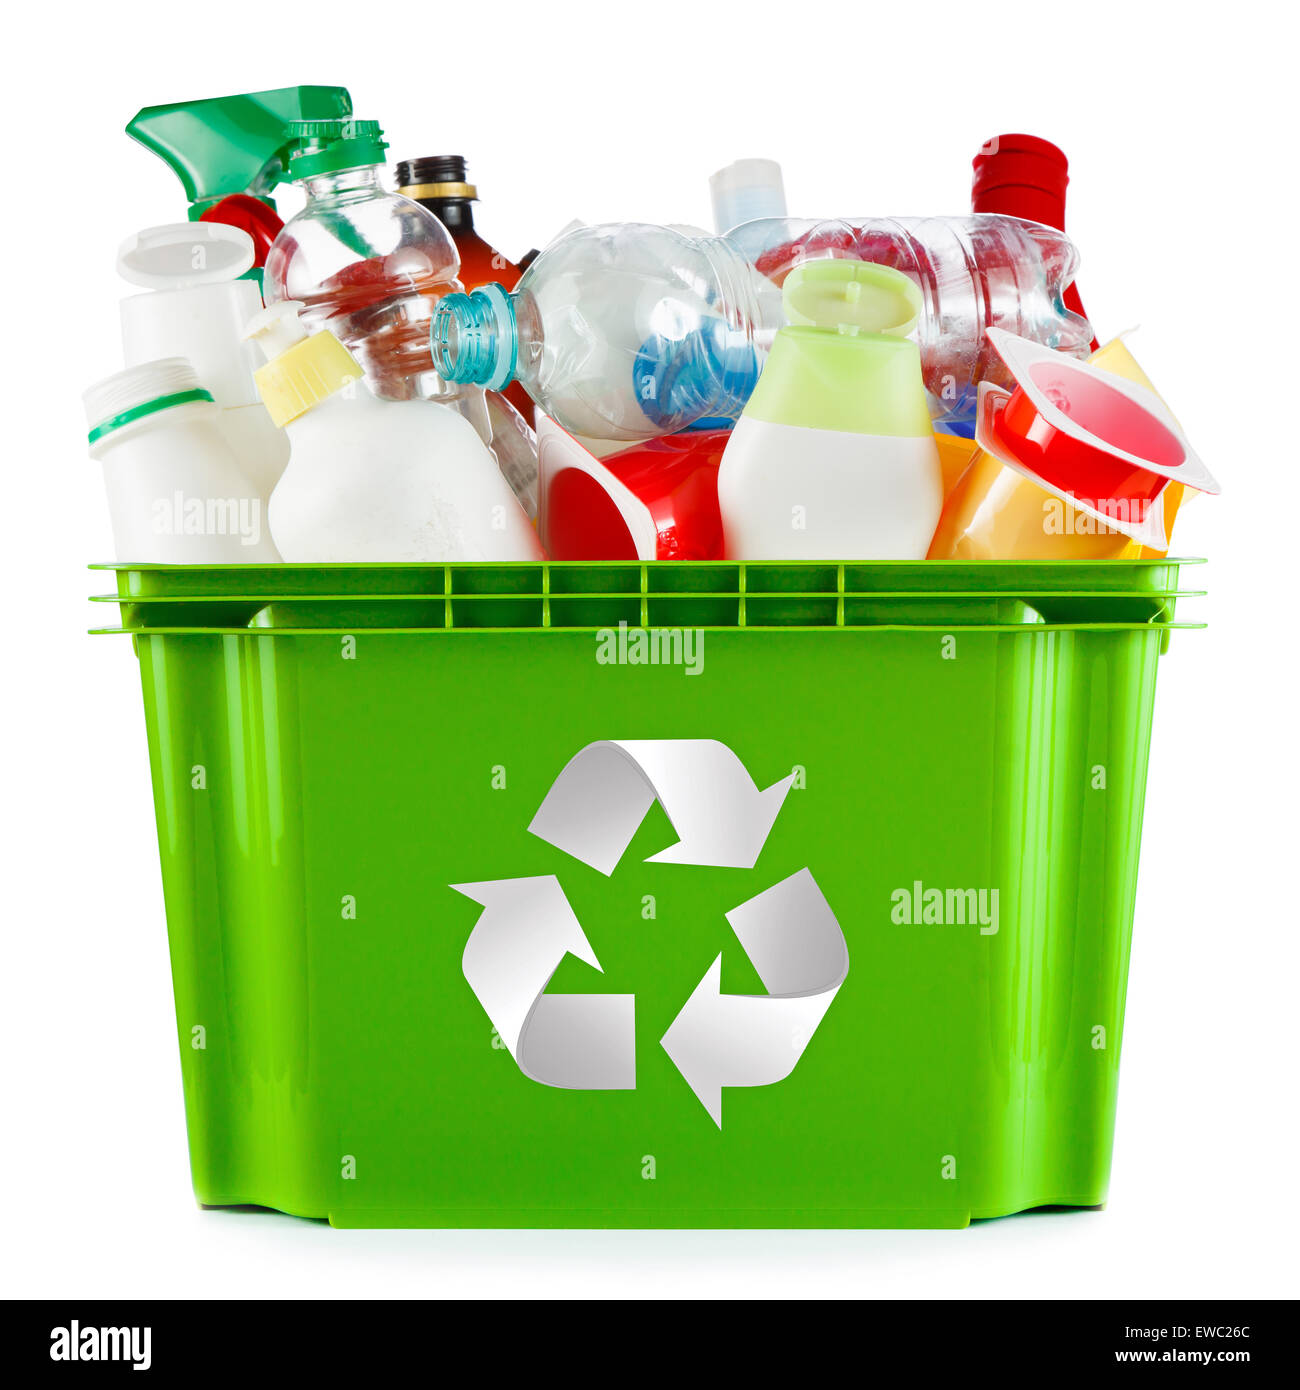 Recycling concept - bin full of empty plastic containers and bottles - Stock Image